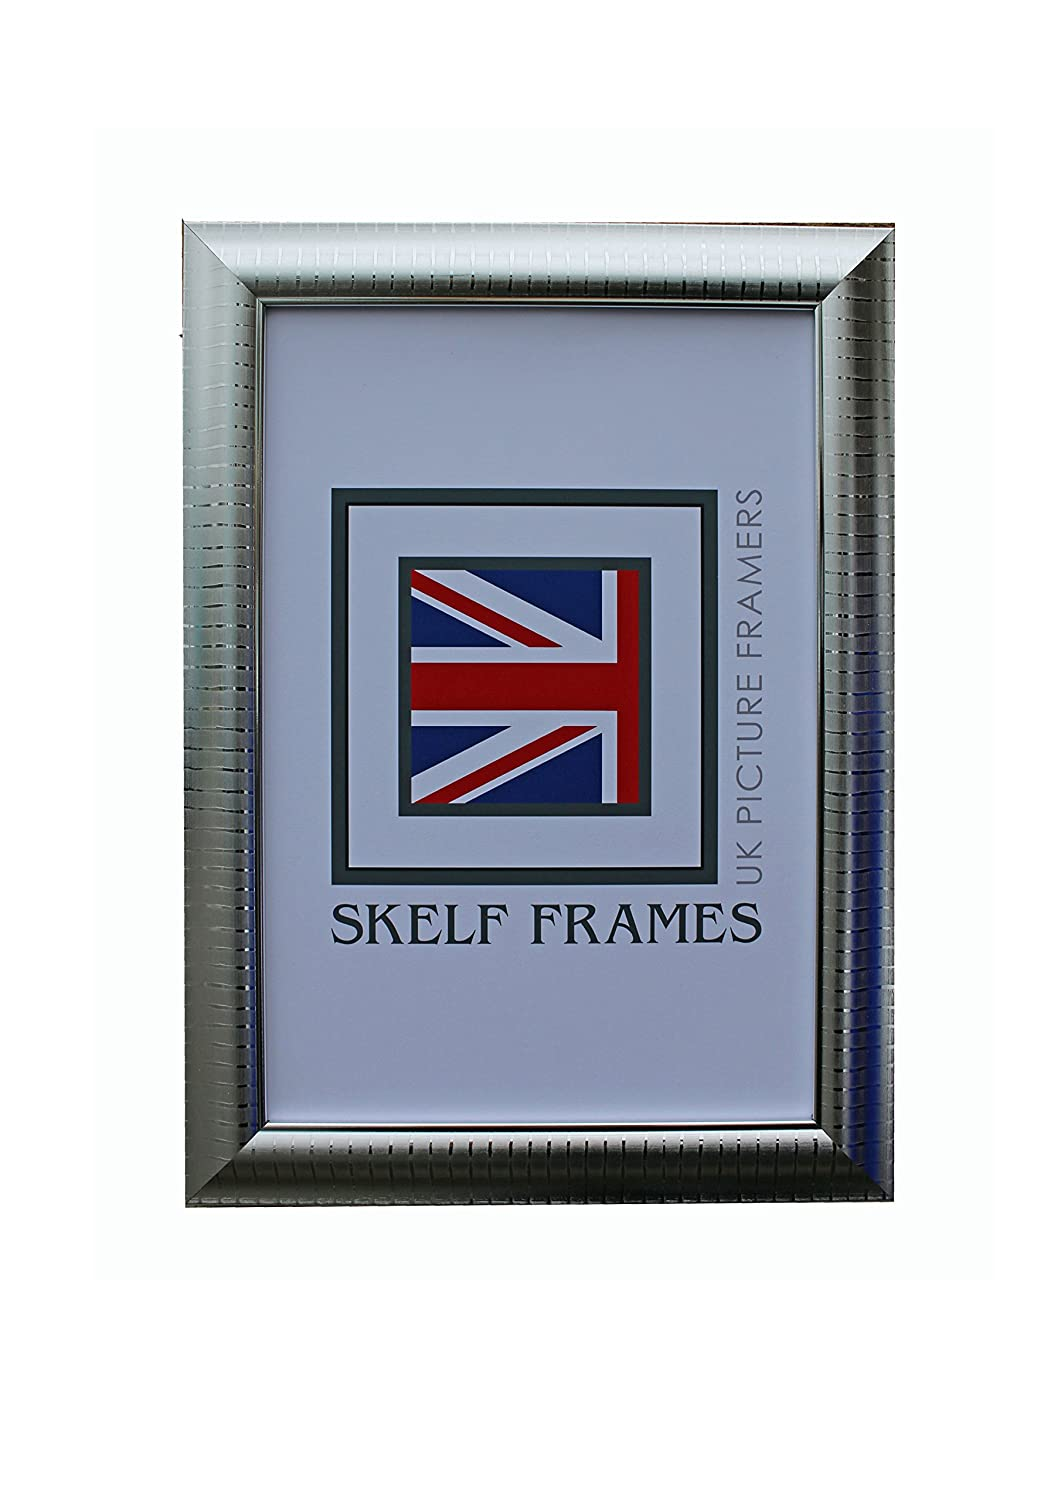 A4 PICTURE PHOTO CERTIFICATE FRAME WITH GLASS (Walut) Skelf Frames Ltd